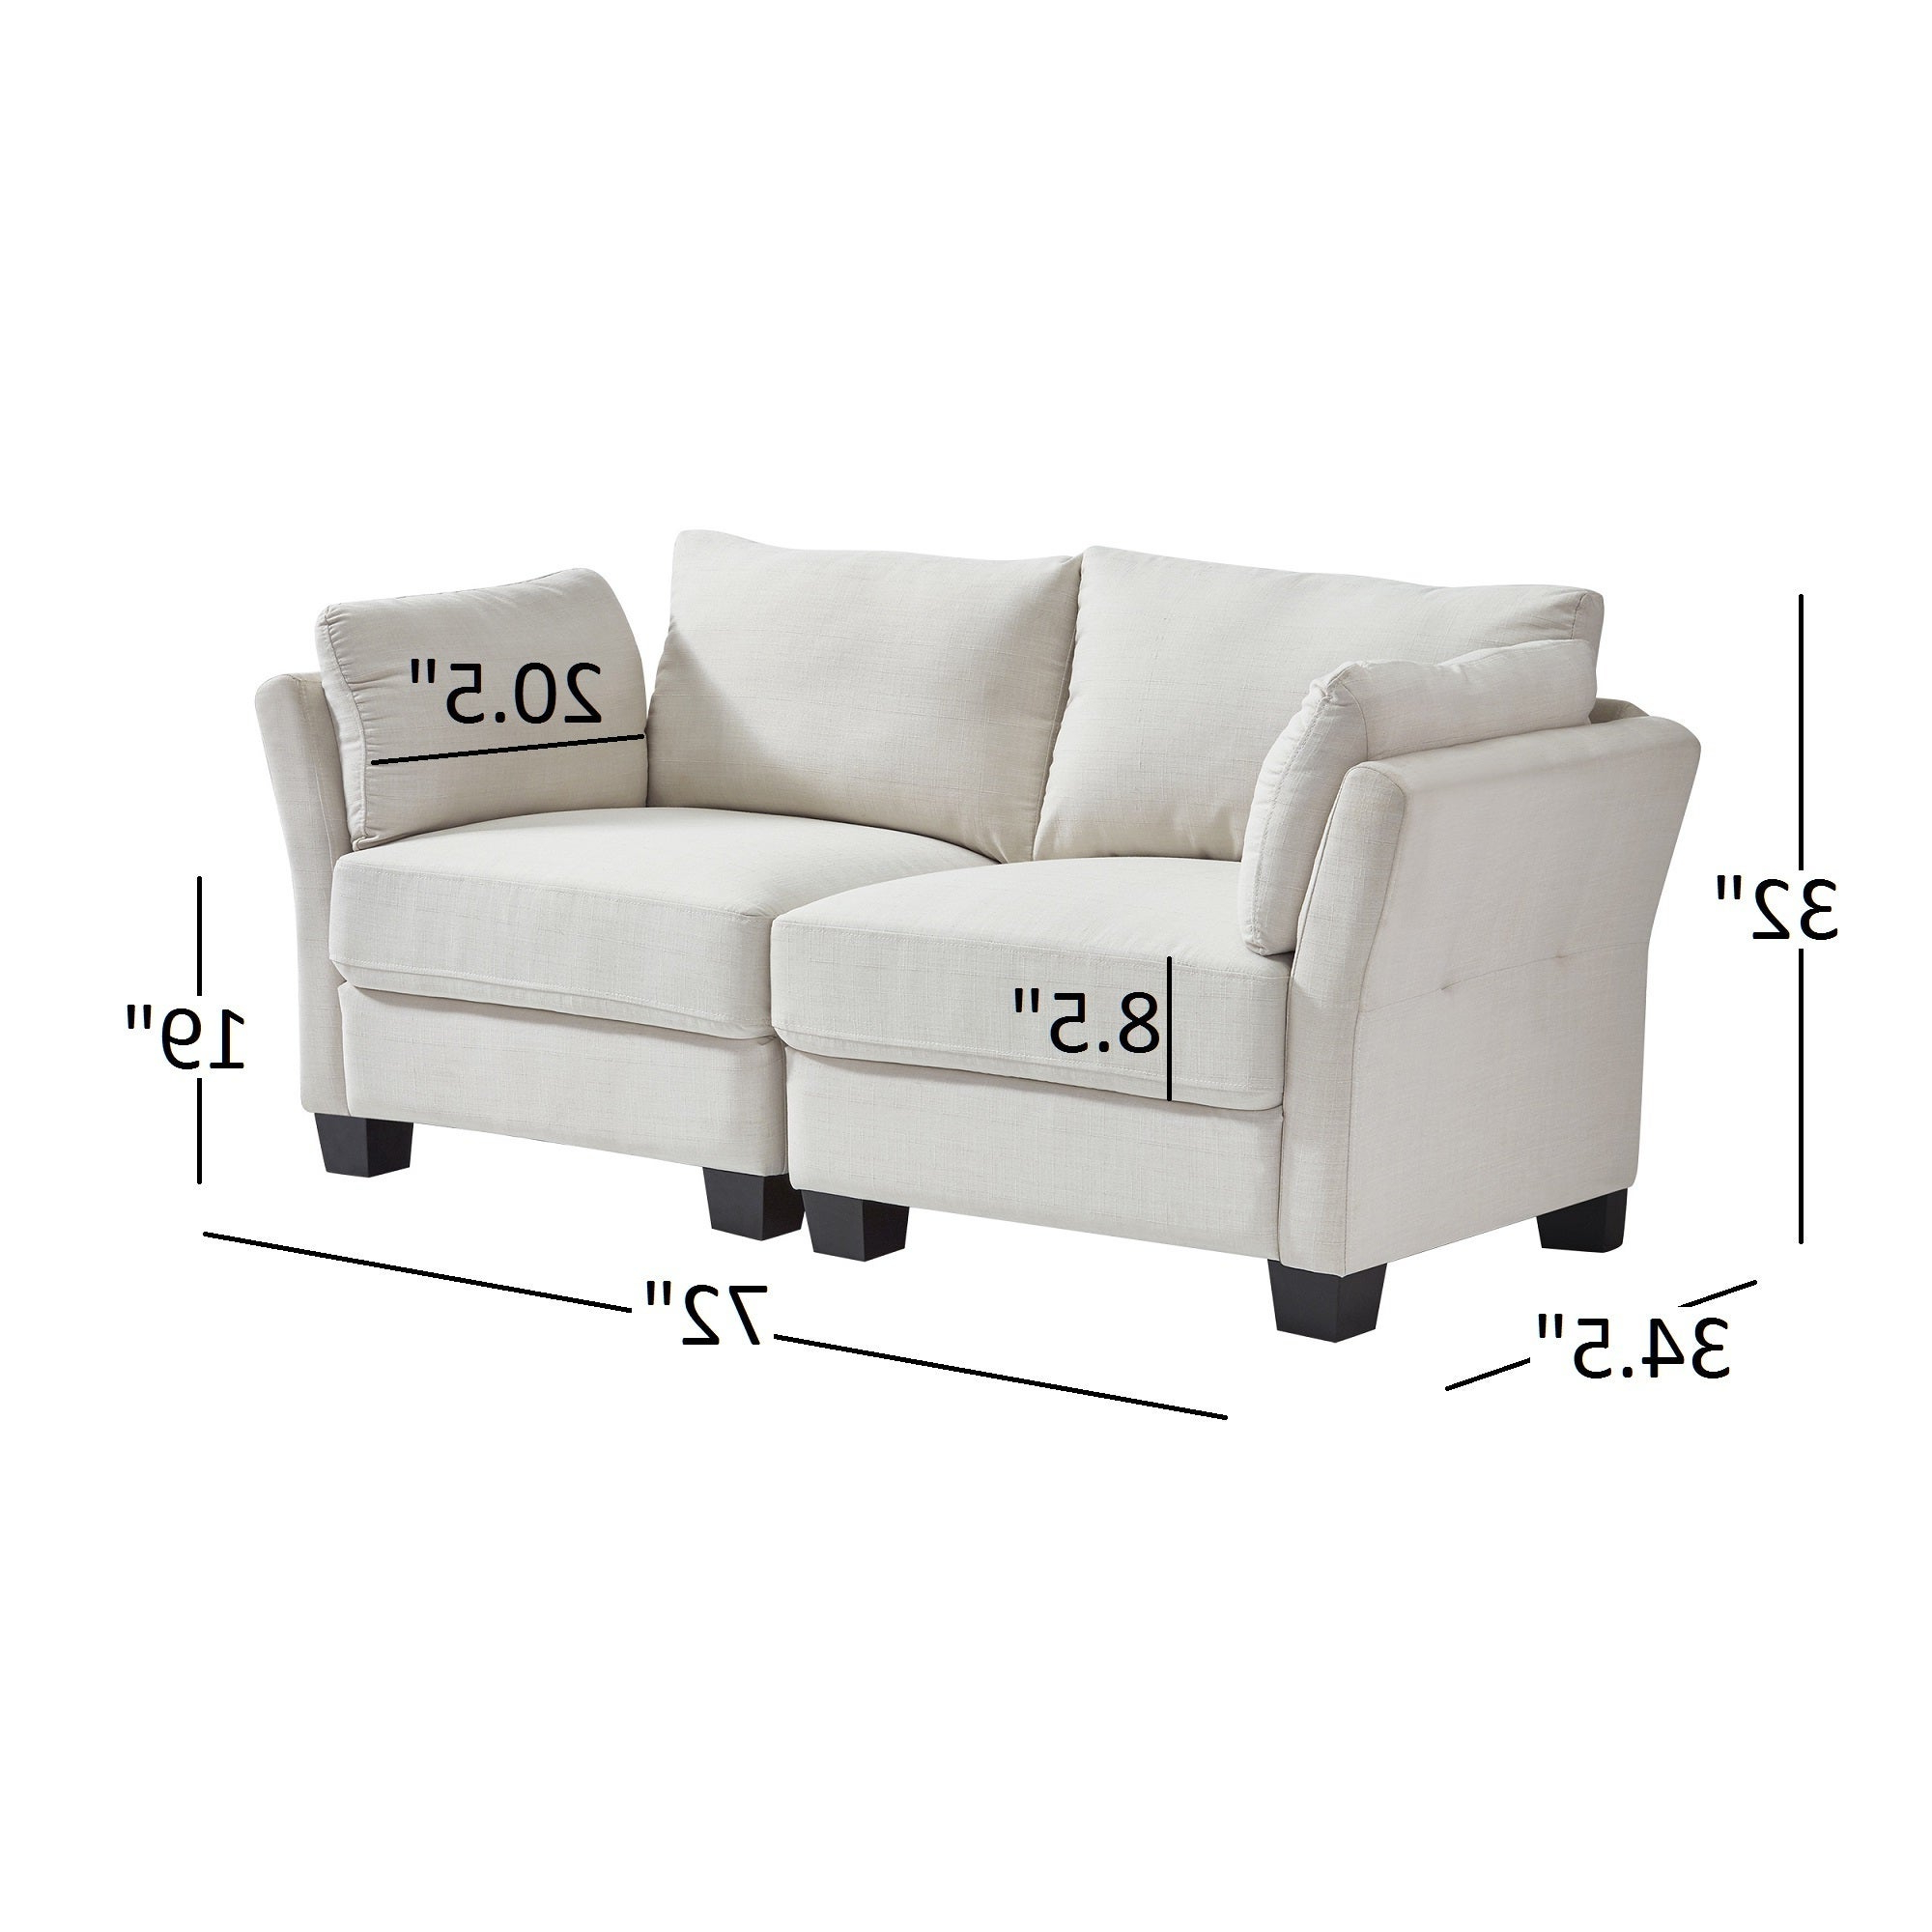 Elize Modern Linen Fabric Loveseatinspire Q Bold With Regard To Most Up To Date Dayse Contemporary Loveseats With Cushion (View 23 of 25)